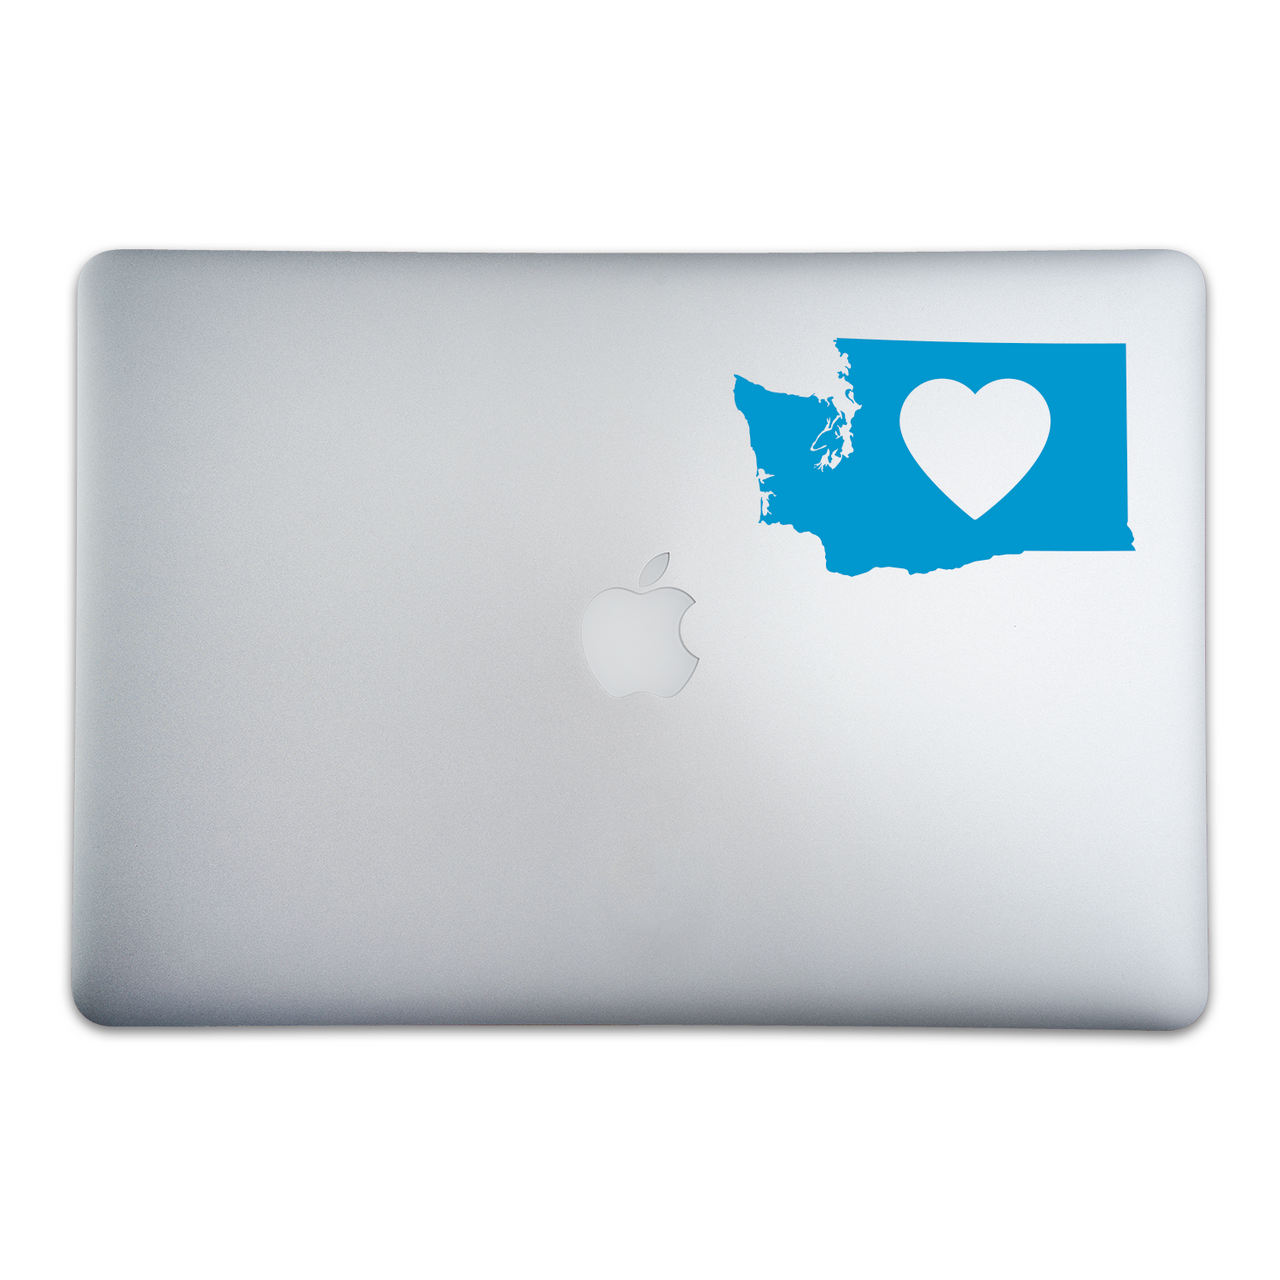 Washington State Love Sticker On A 15-Inch Macbook Pro